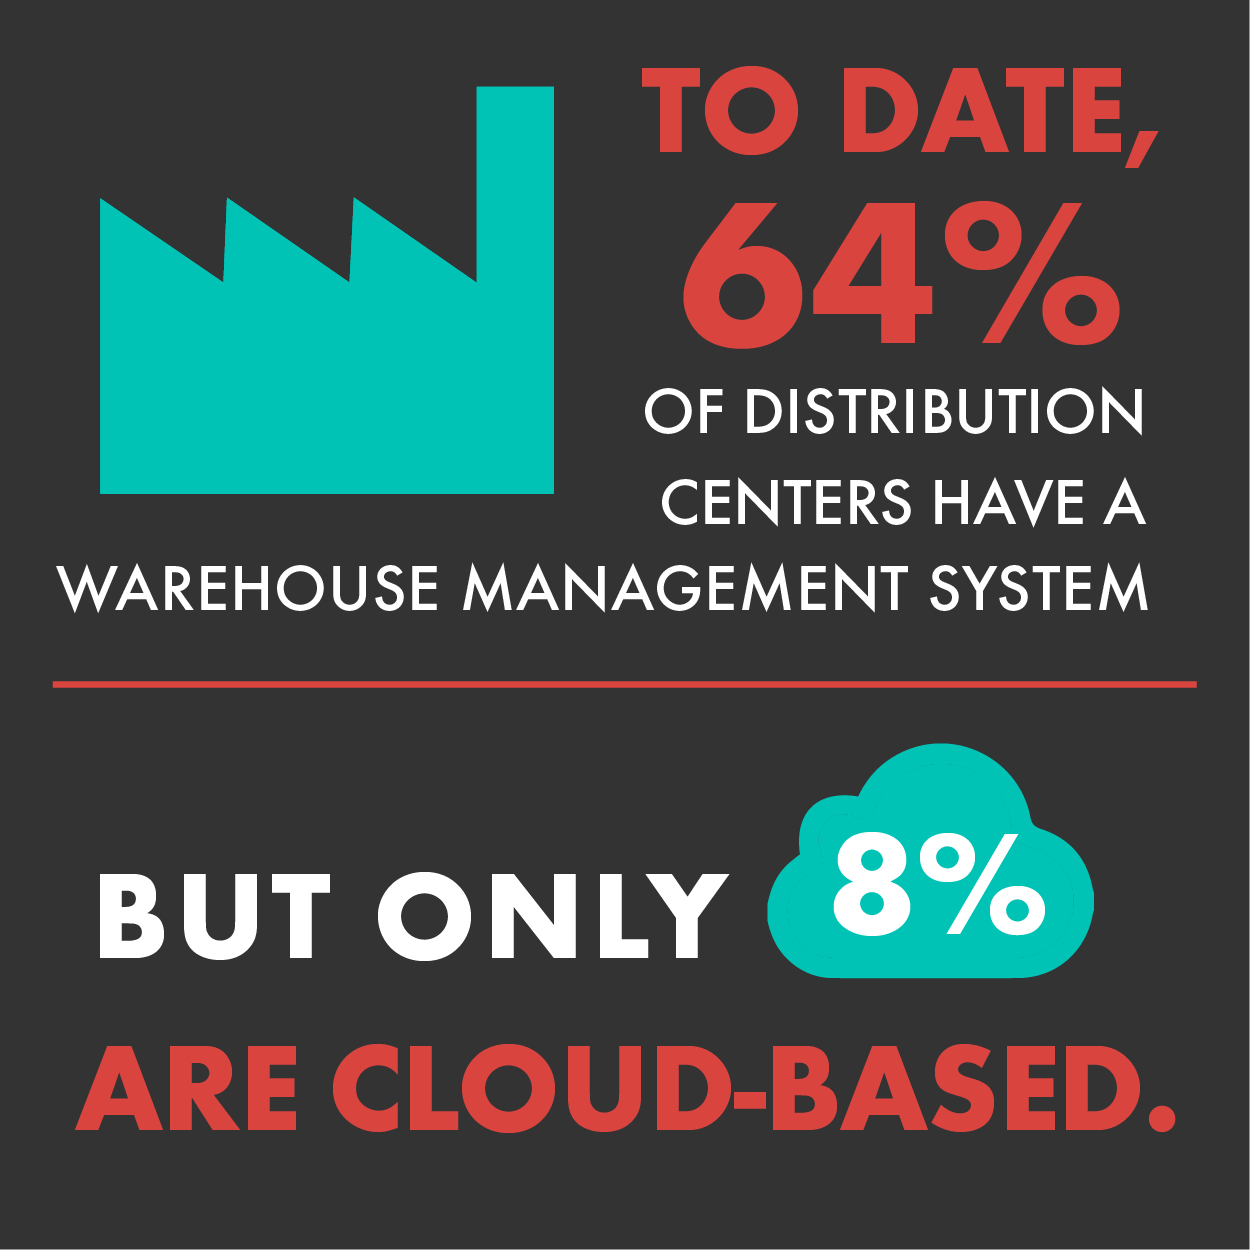 More than half of distribution centers have a WMS, but less than 10 percent are cloud-based